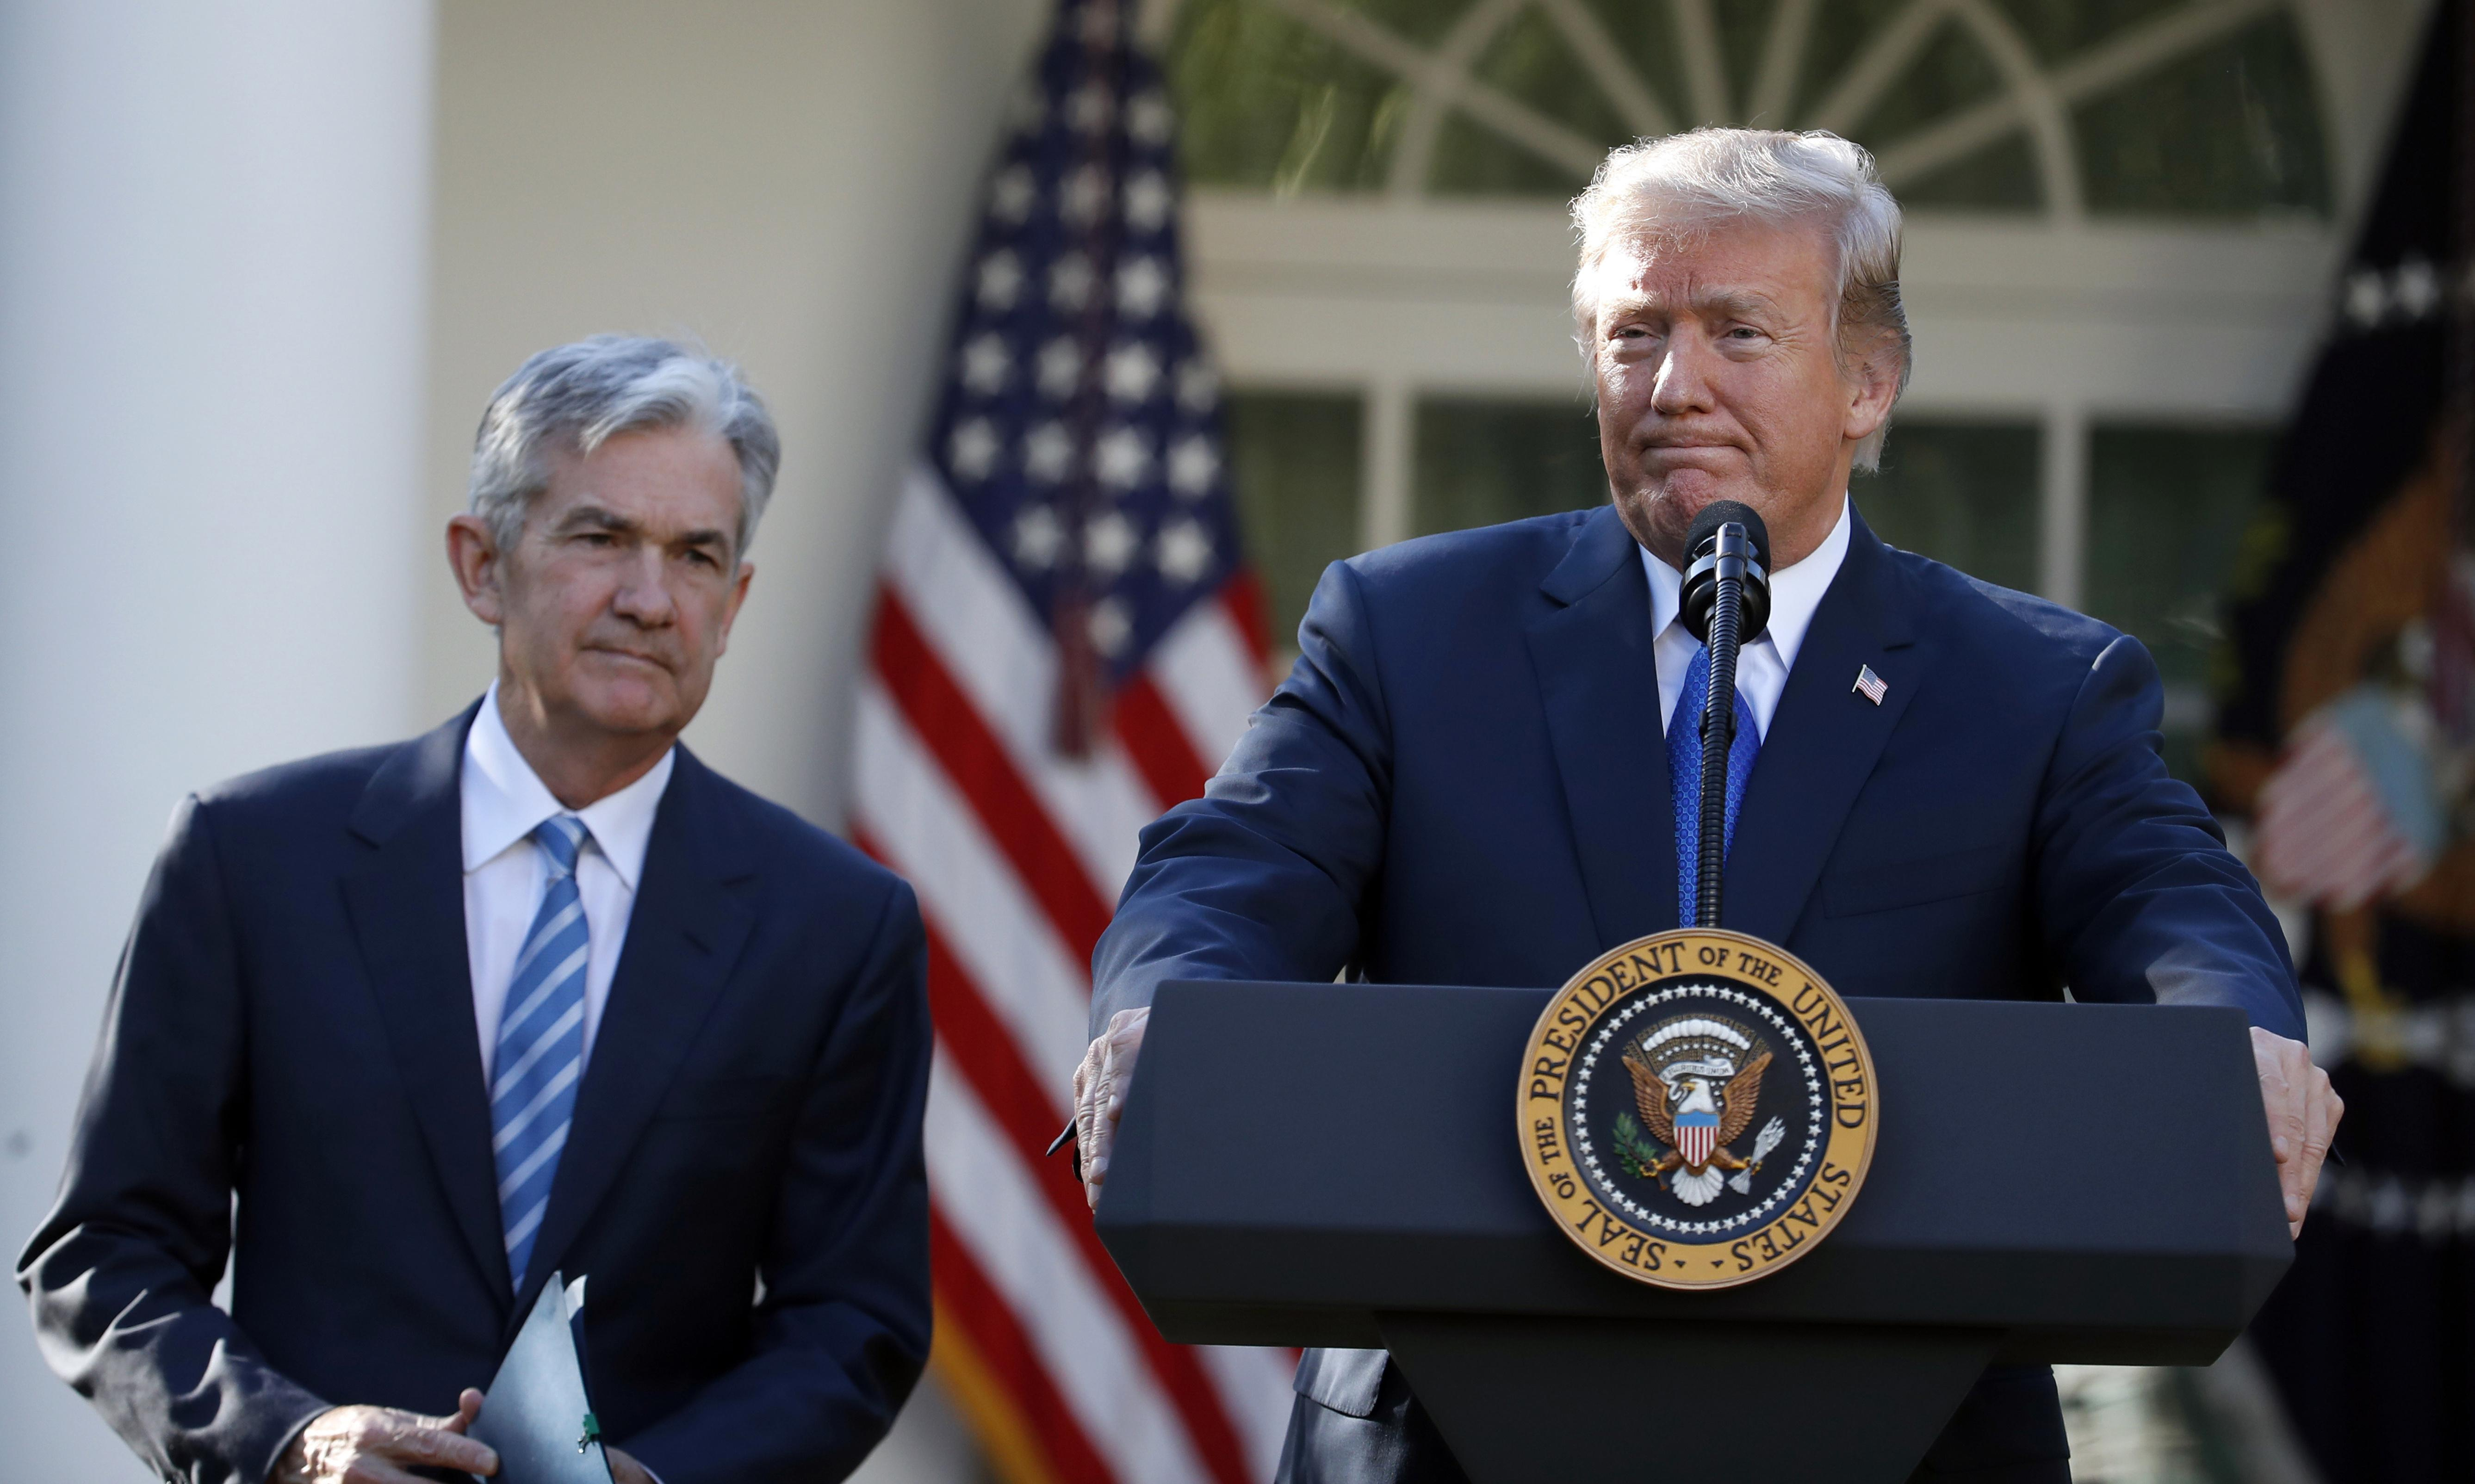 Trump criticises Fed chairman Powell for trying to be 'tough'